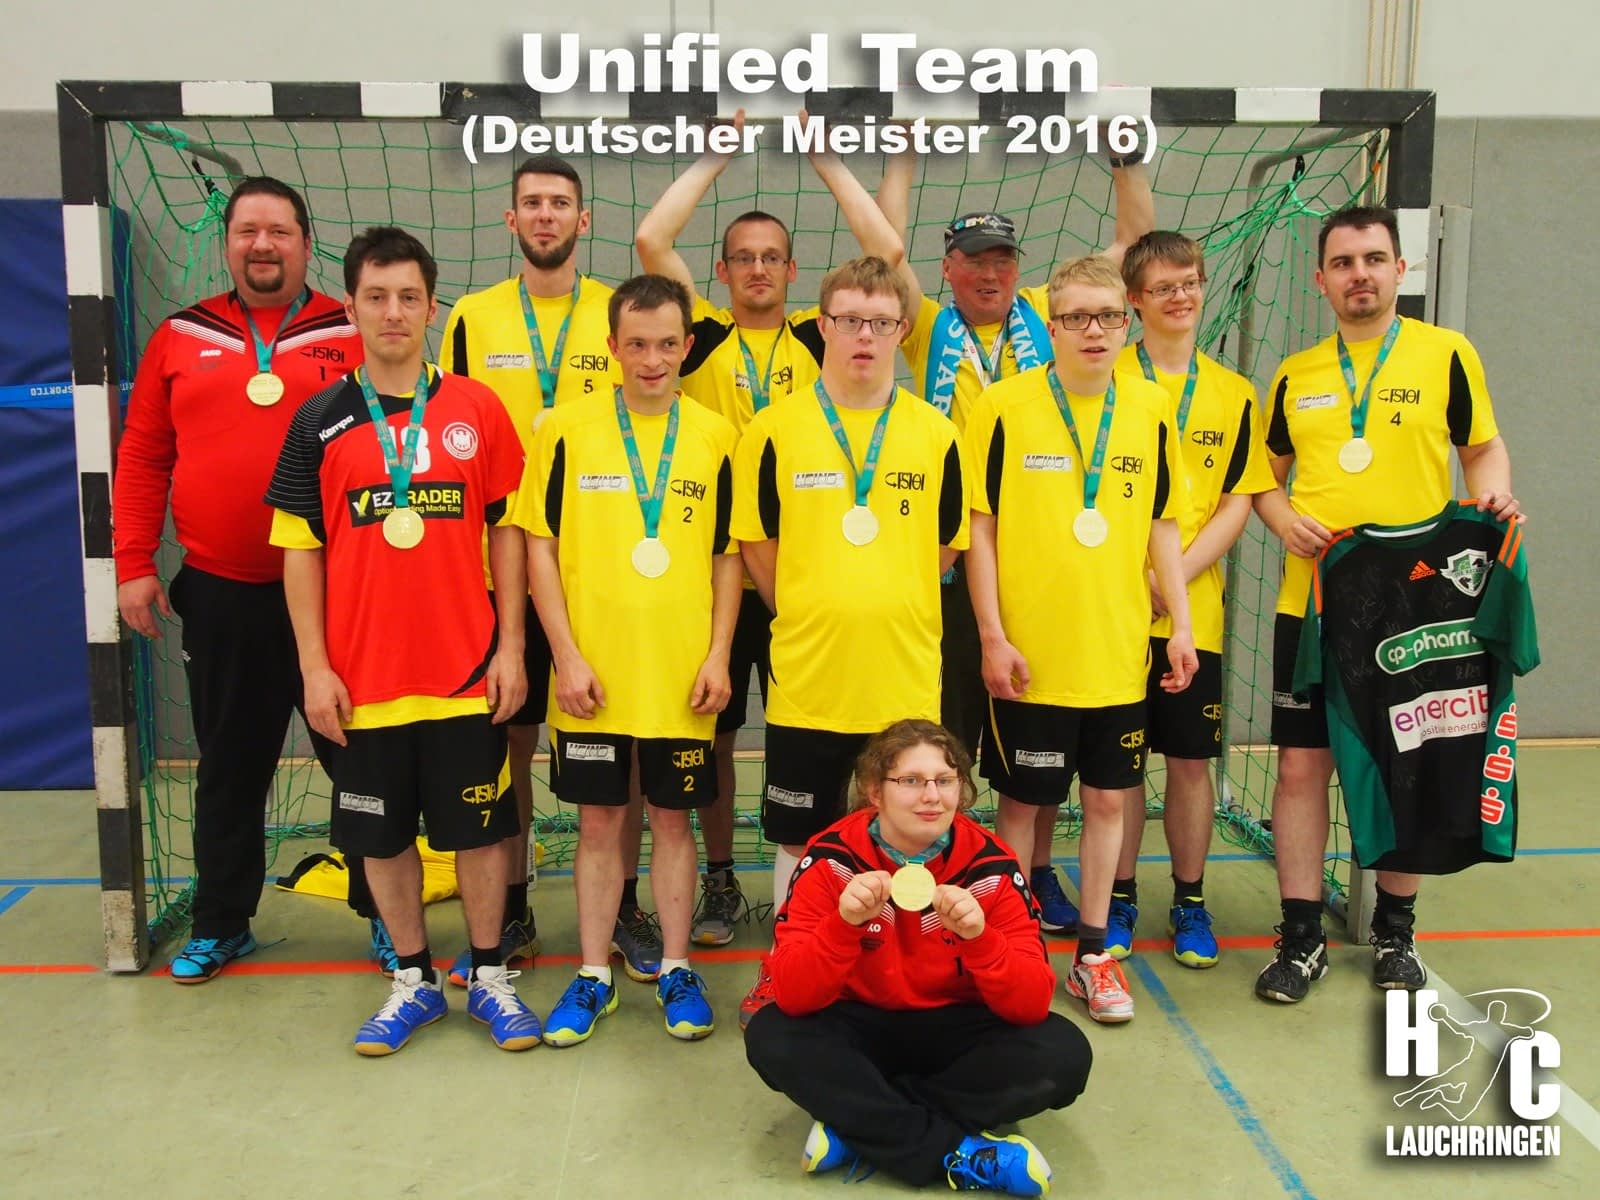 Unified Team